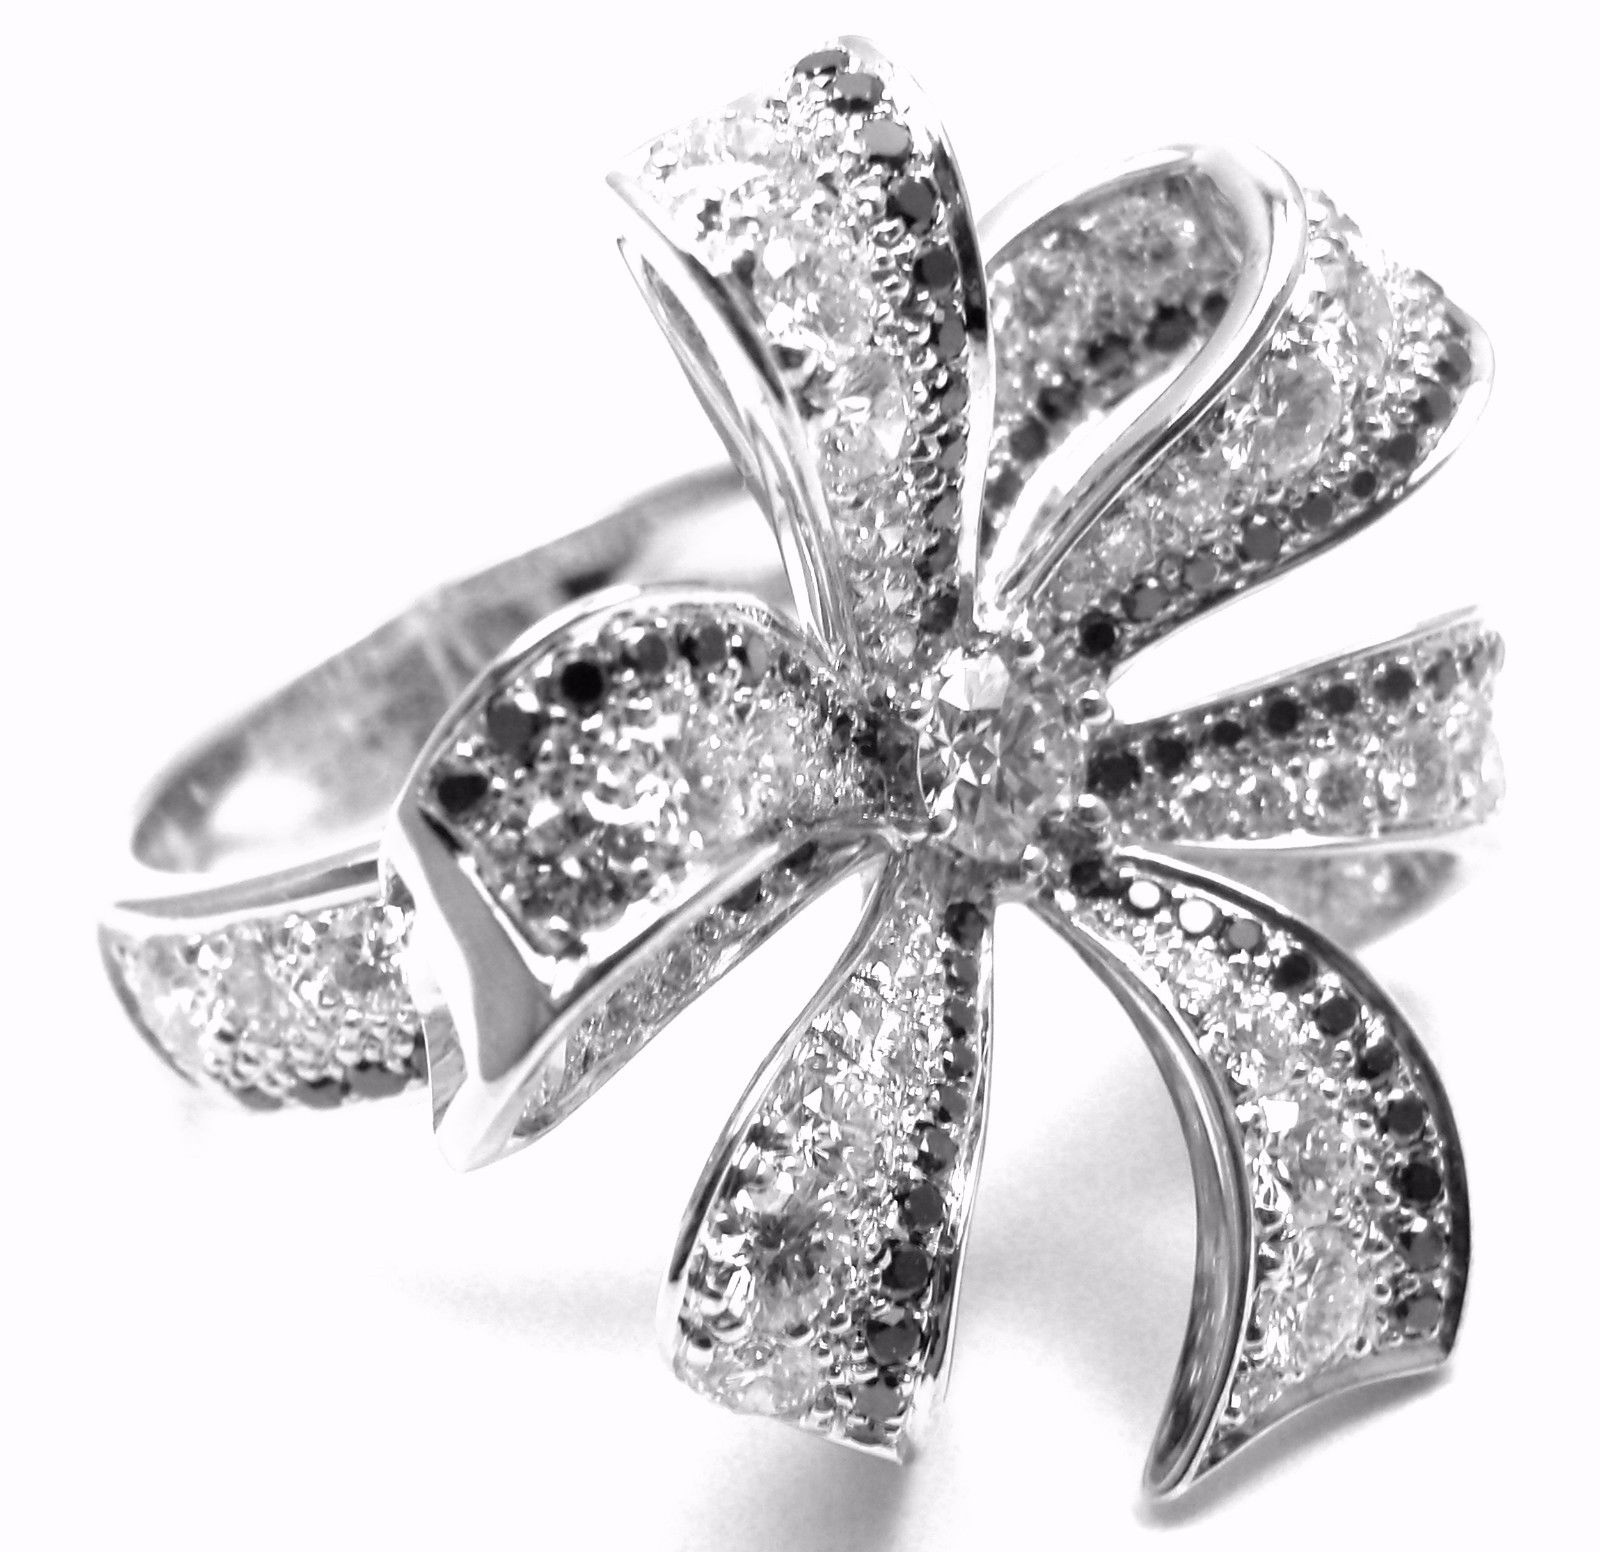 Chanel 1932 18k White Gold White & Black Diamond Ring